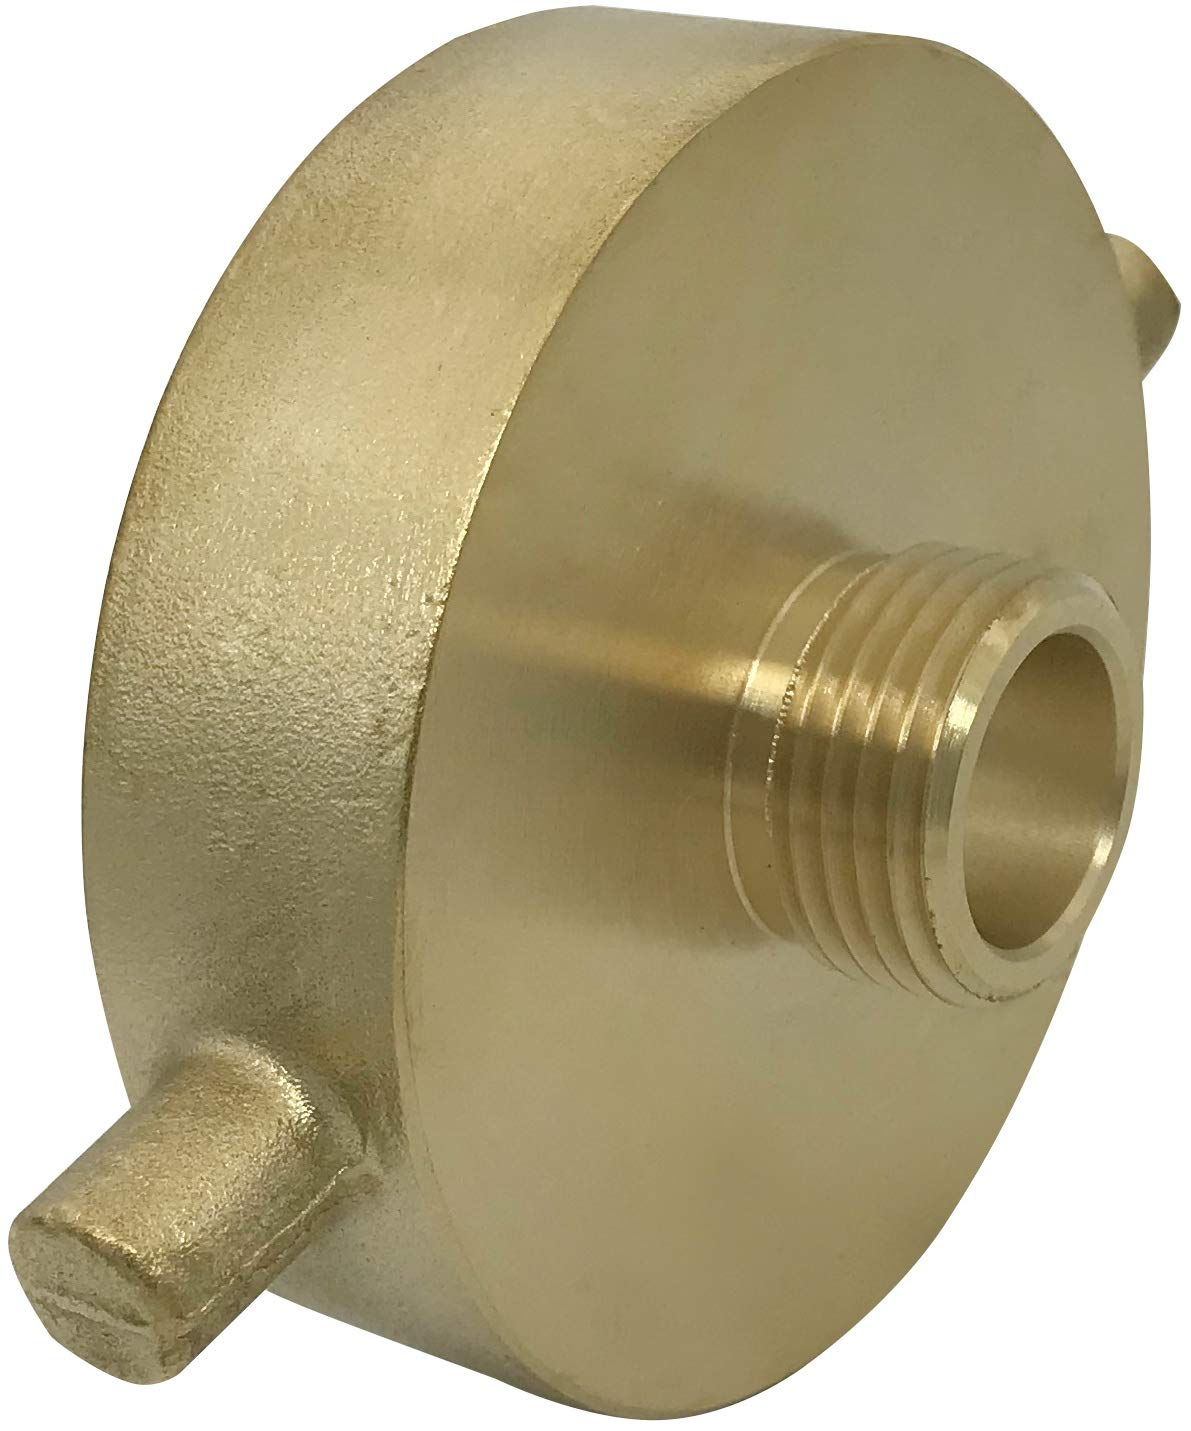 NH LTWFITTING Brass Fire Hydrant Adapter 2-1//2-Inch NST Pack of 2 Female x 3//4-Inch GHT Male